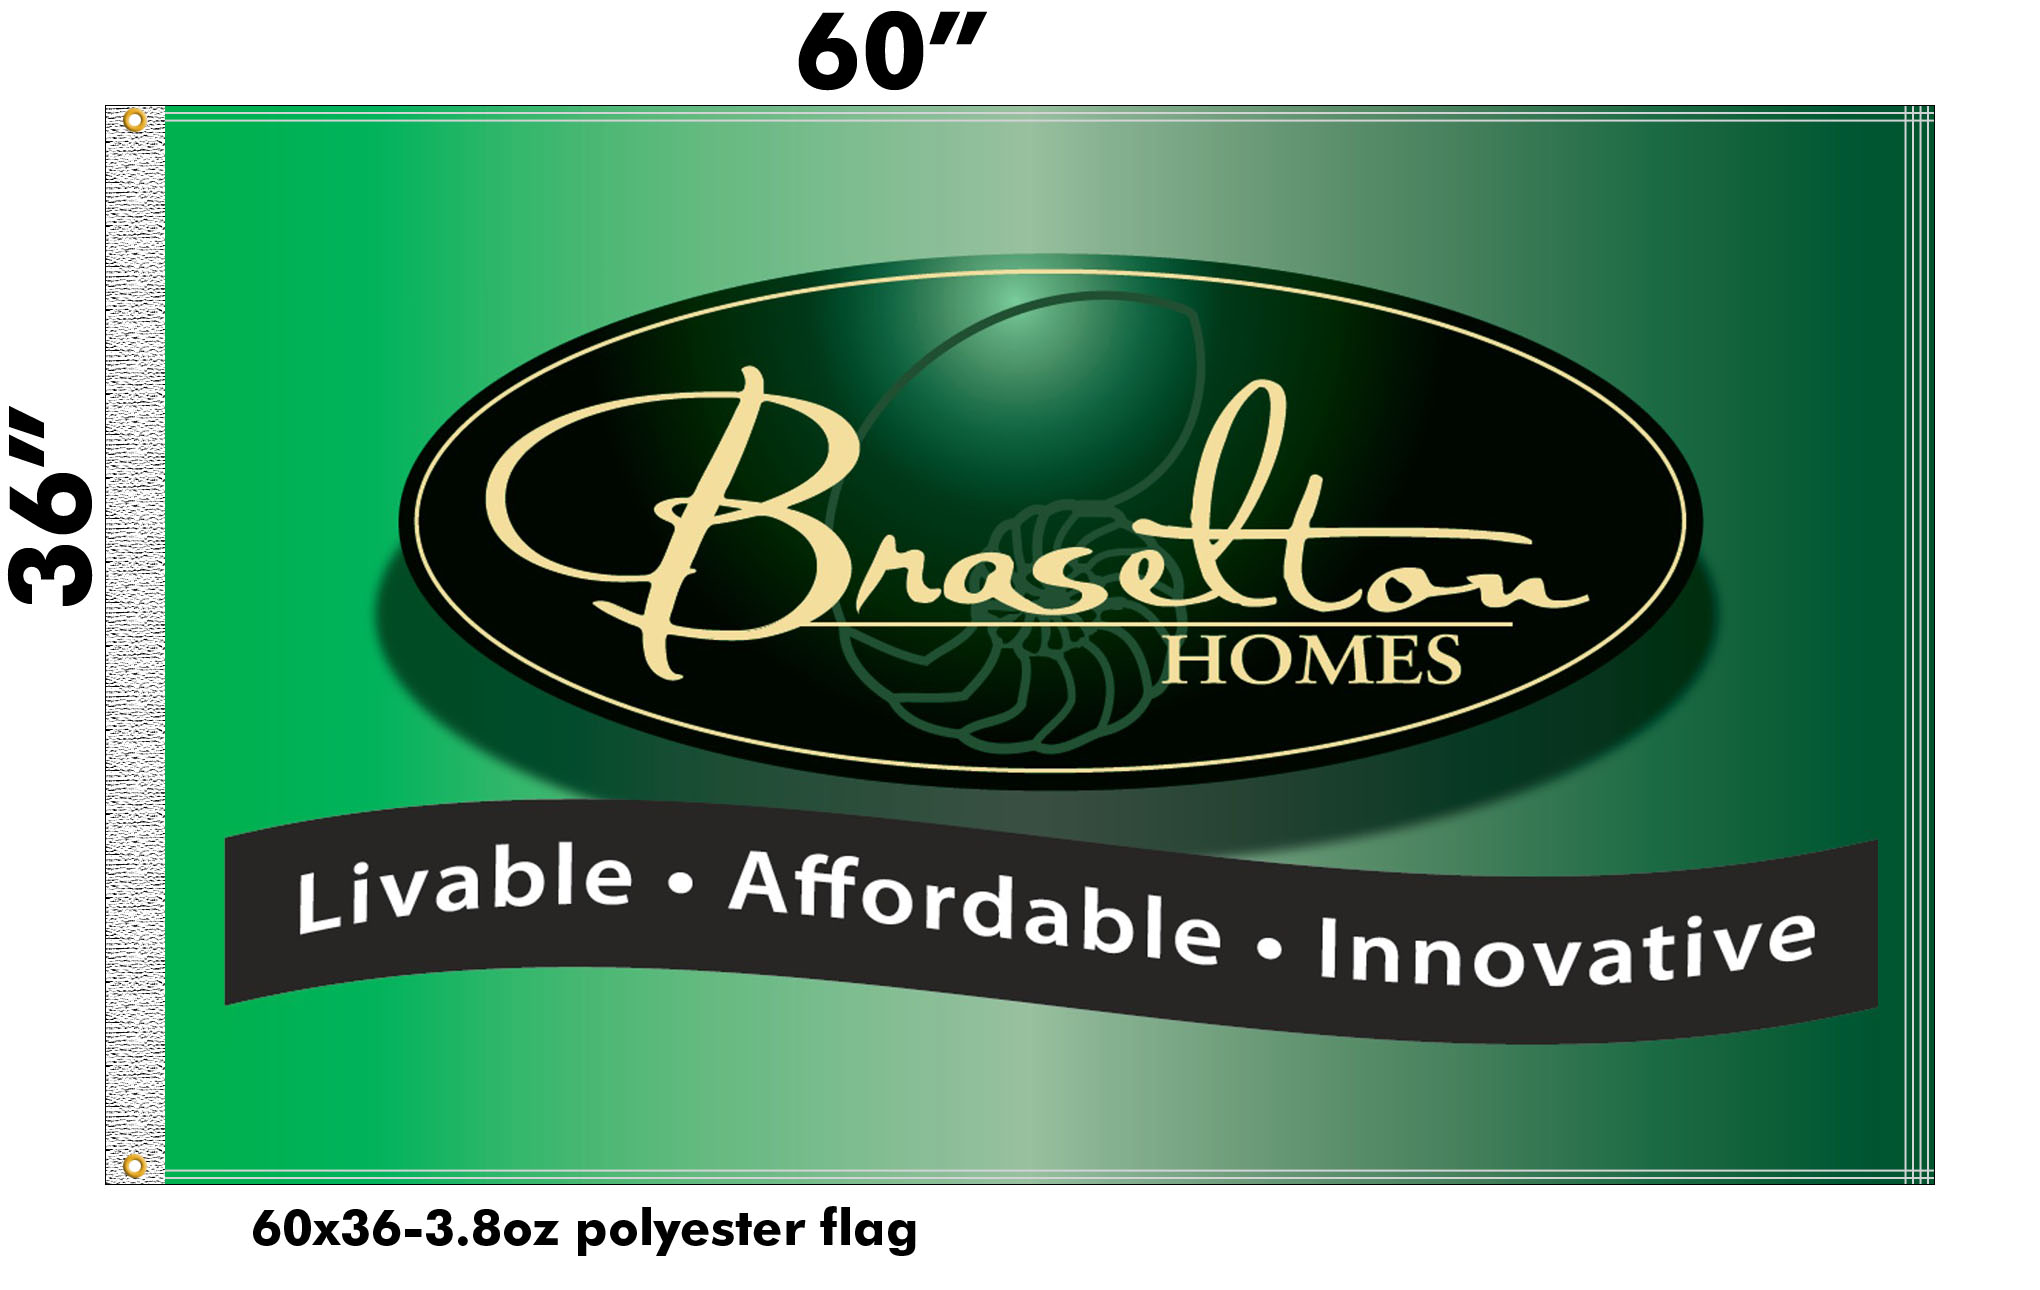 Braselton Homes